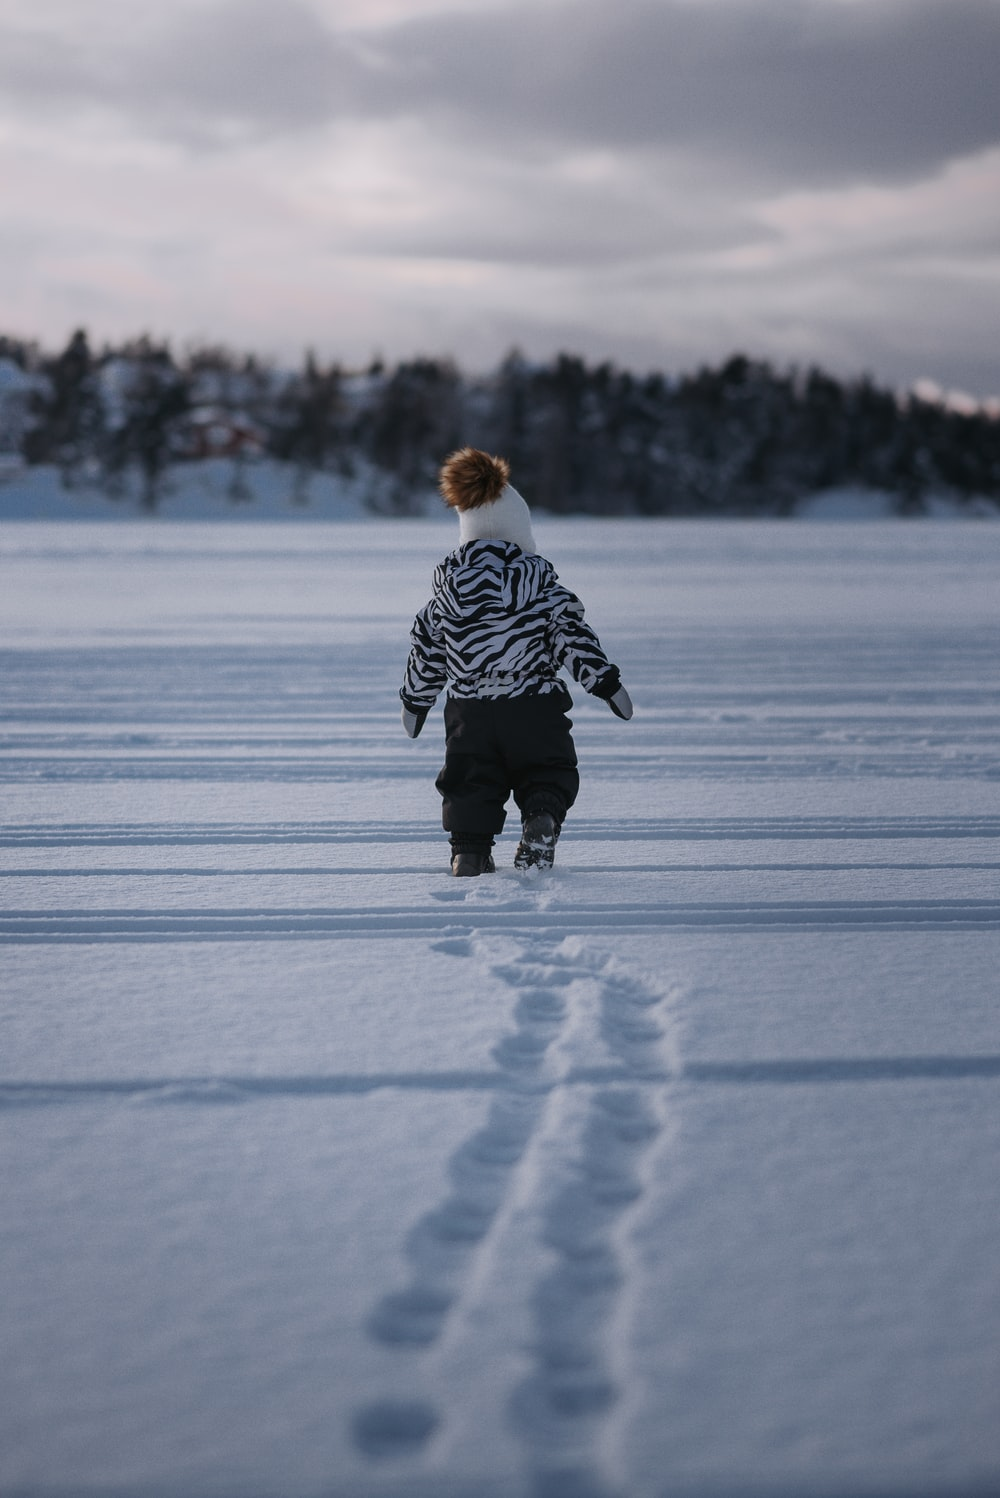 child in black and white striped jacket walking on snow covered ground during daytime